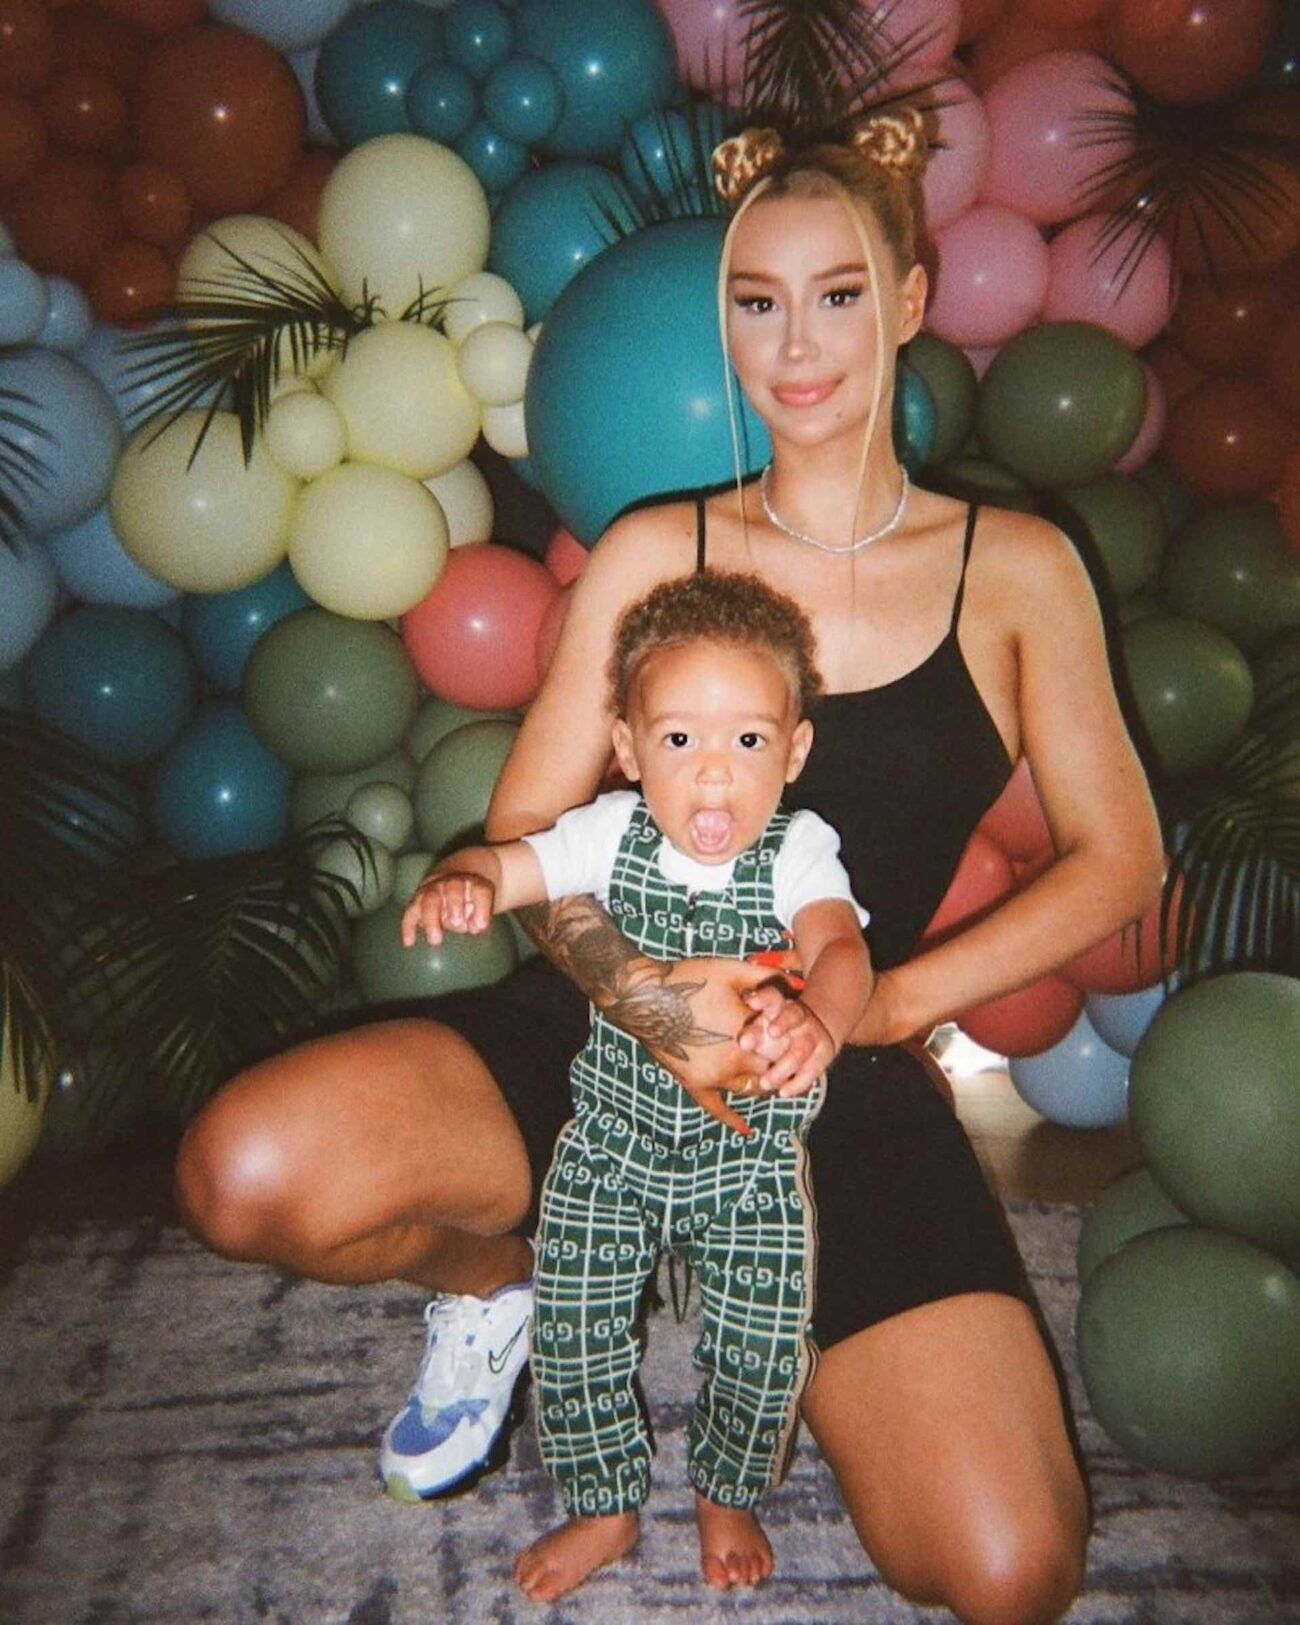 Iggy Azalea is going to bat for her child after social media trolls attacked his choice of onesie. Get ready to retweet as we dive into these reactions!